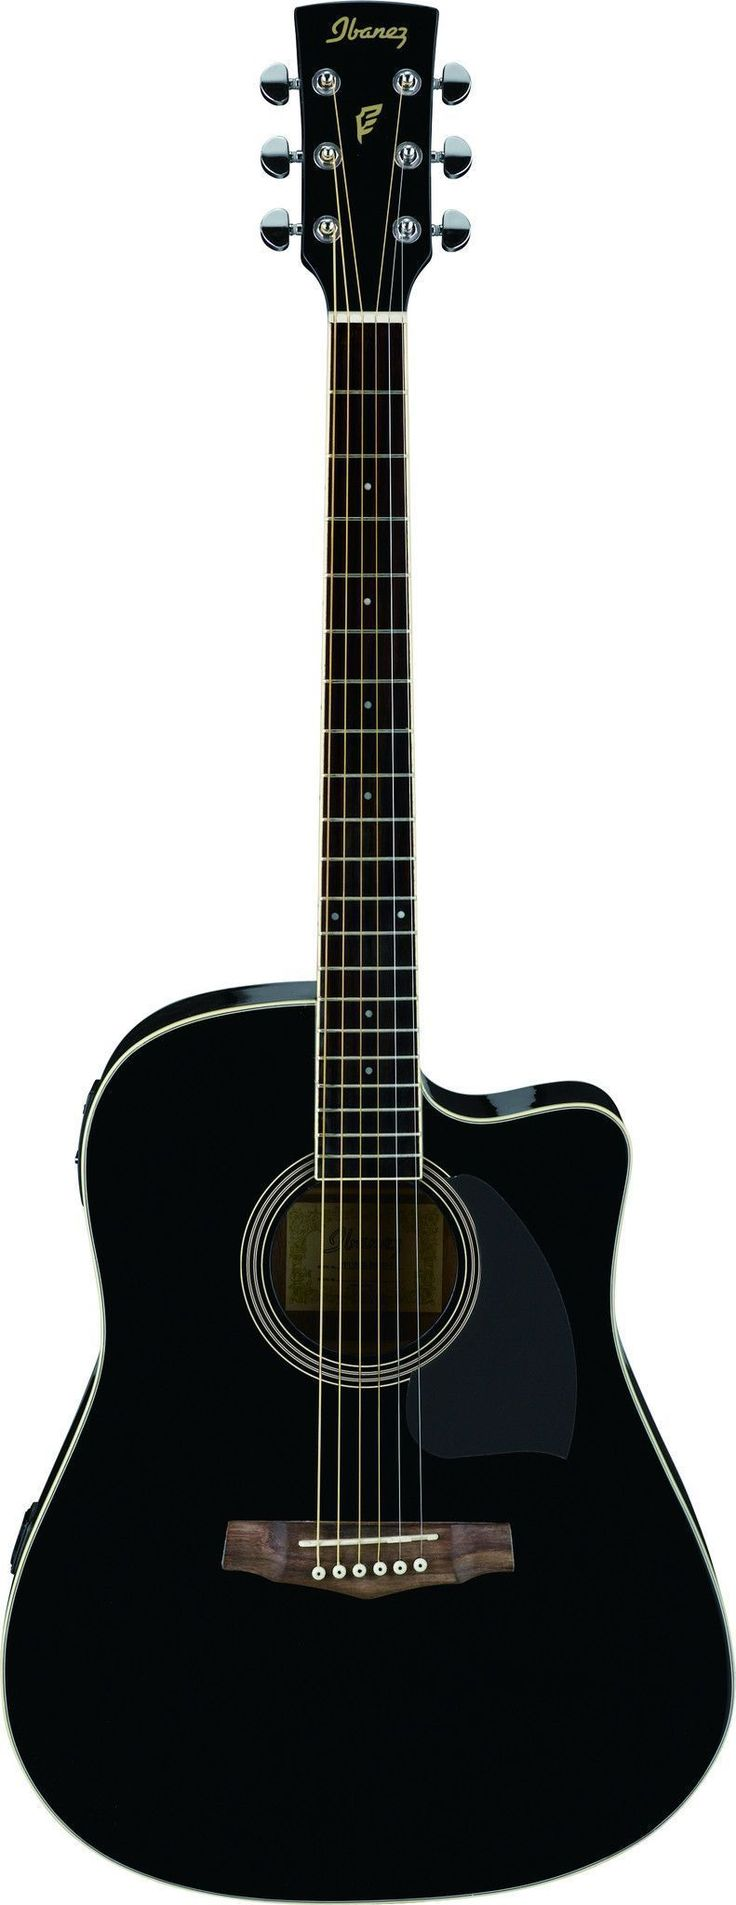 The PF series of acoustic guitars from Ibanez boast a number of professional features normally found on high-end acoustics, and backed by the Ibanez name and quality. The most notable features of the Piano Chords Chart. This should help when I play the keyboard. I know the chords, but what configuration to play often eludes me. Now ANYONE Can Learn Piano or Keyboard pianofora.blogspot.com Piano Chords Chart. This should help when I play the keyboard. I know the chords, but what configuration…